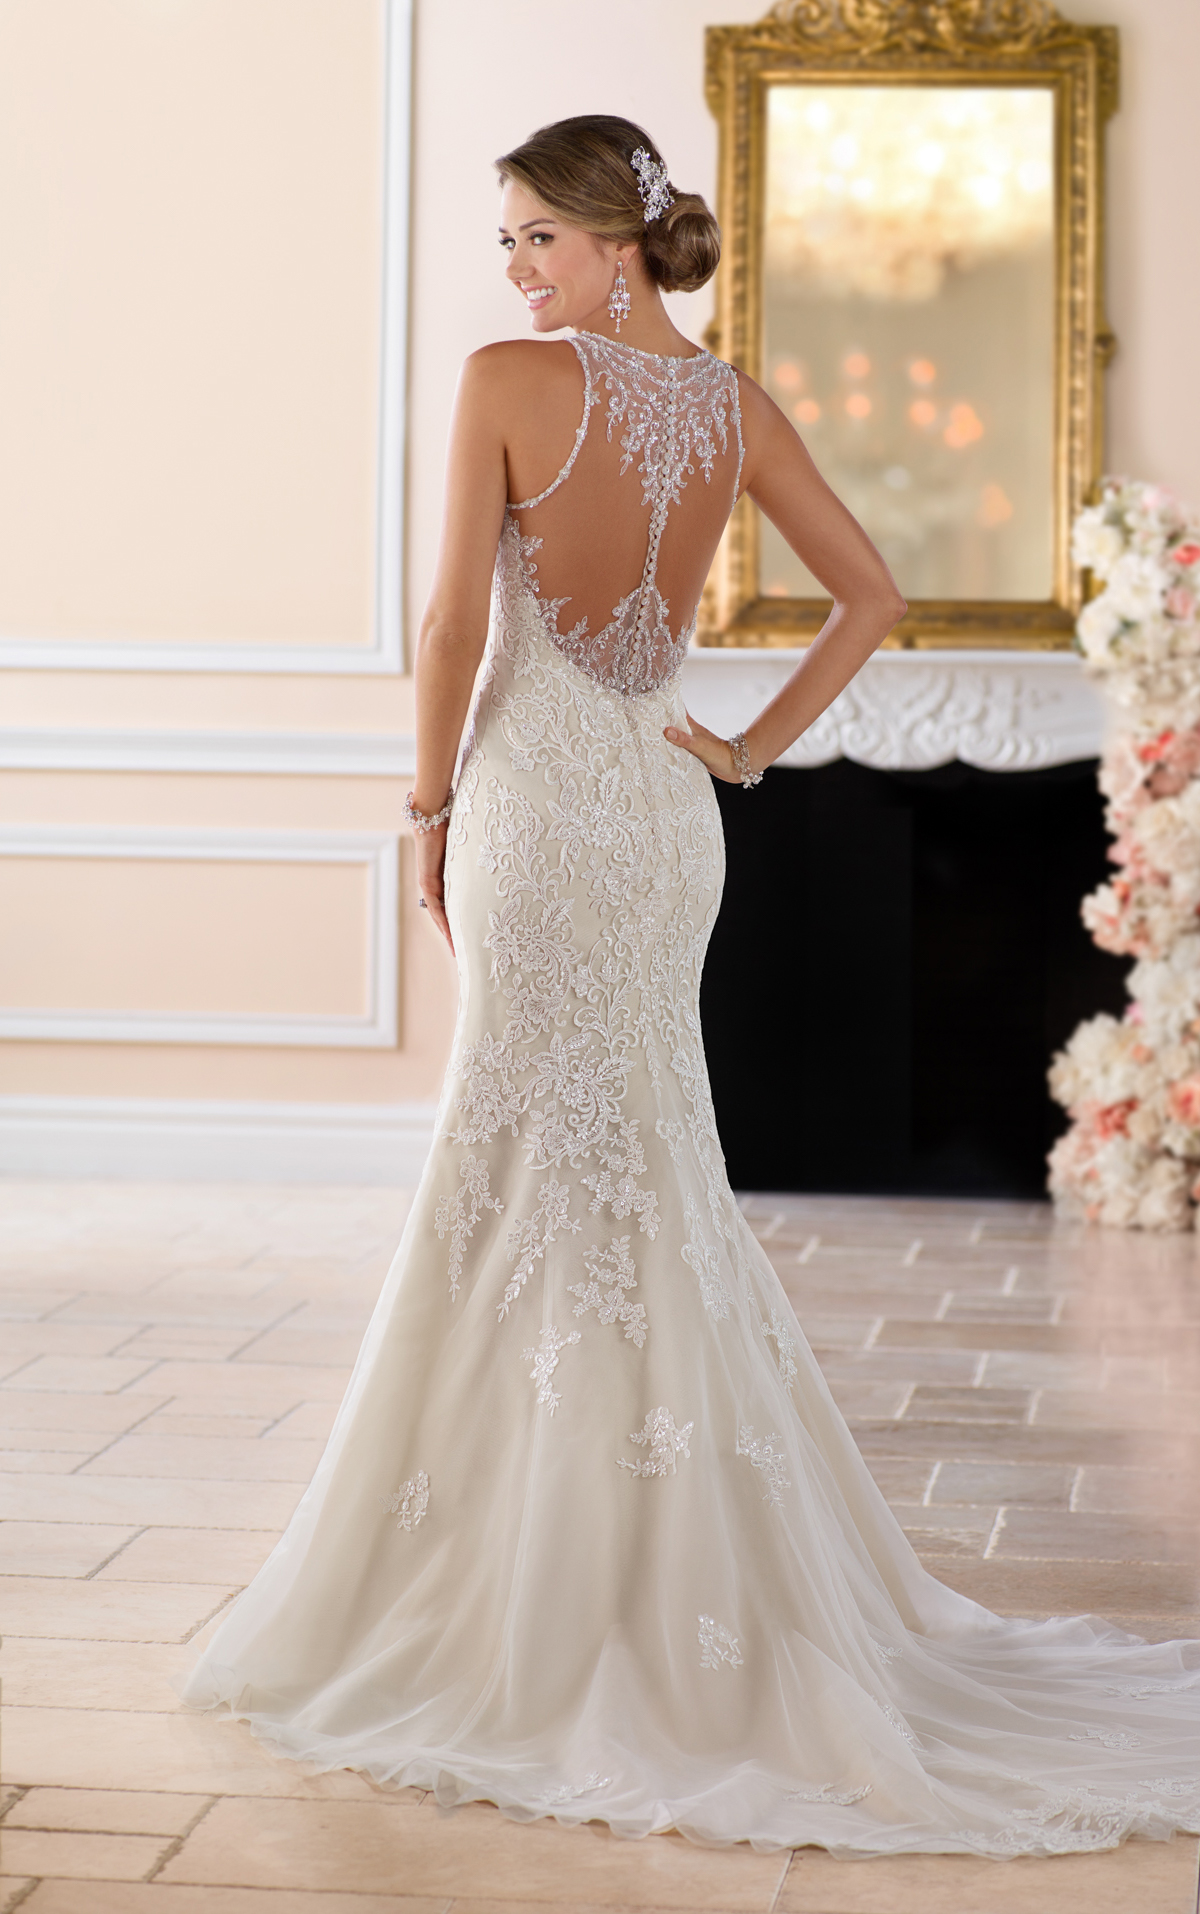 stella york by ella bridals wedding dresses gowns essex